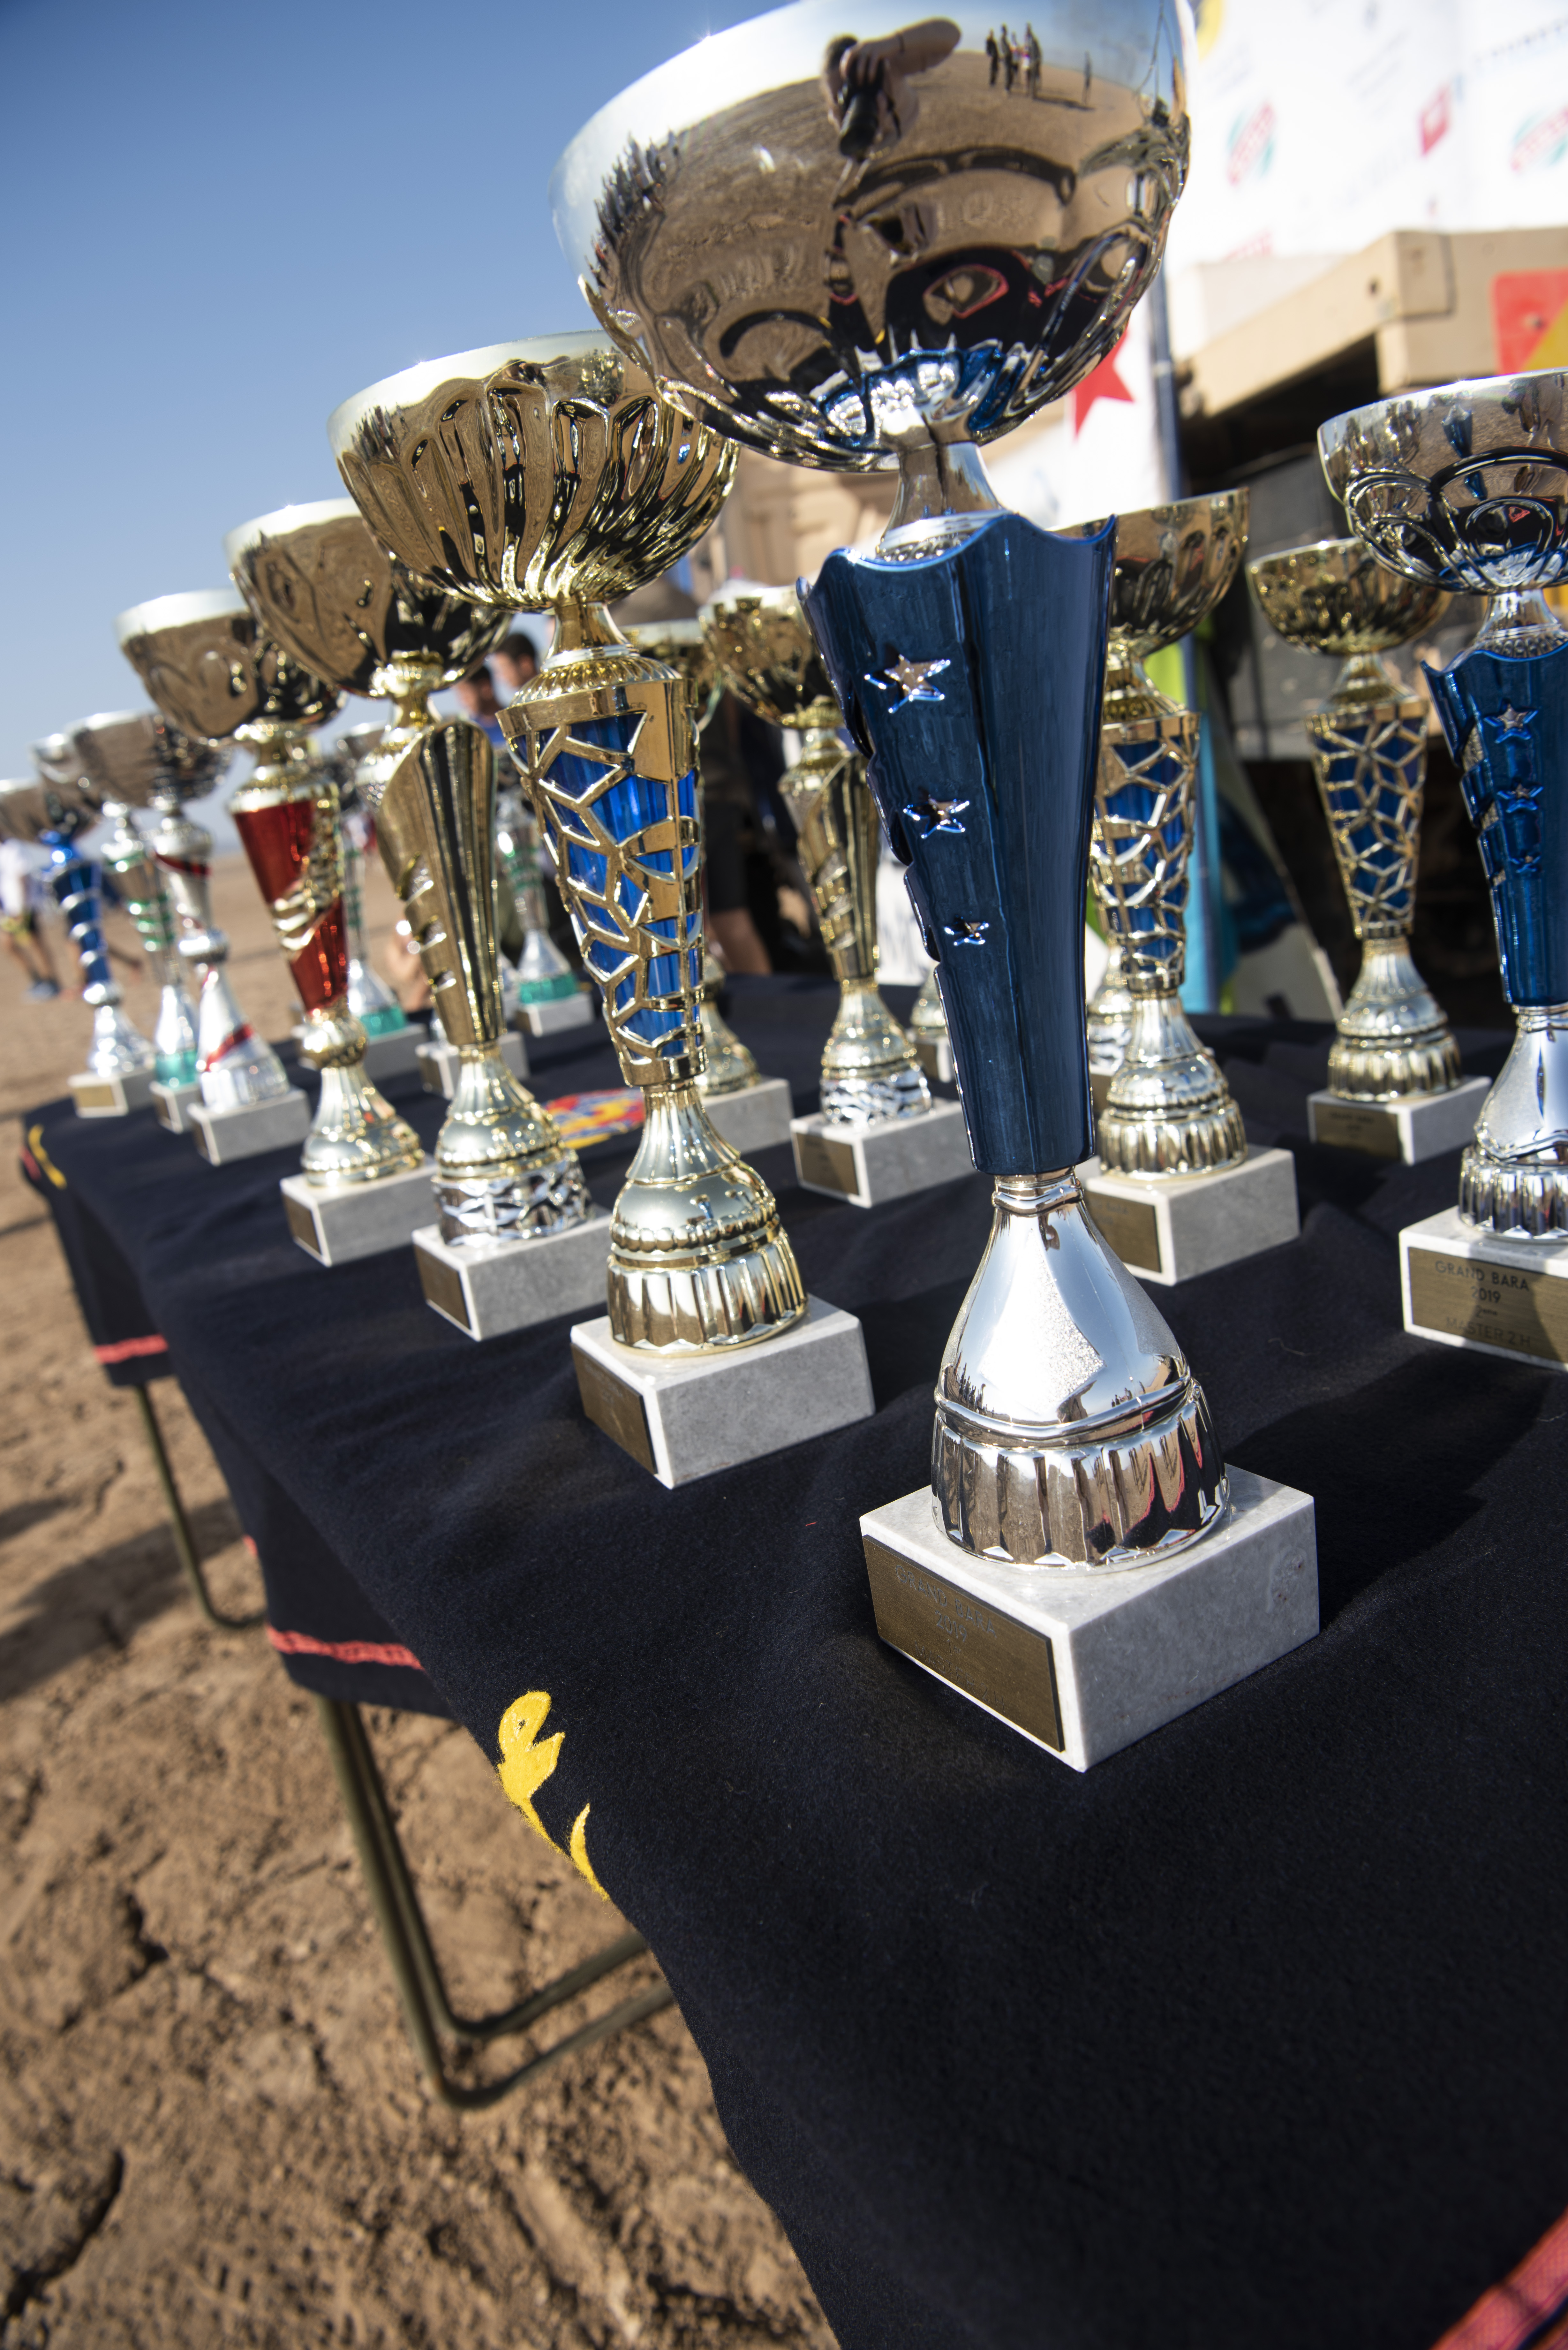 Trophies for winners of the annual Grand Bara Race are displayed before the closing ceremony in the Grand Bara Desert, Jan. 15, 2020. The first place male winner represented the Djiboutian Republican Guard and completed the 15k race in approximately 43 minutes. The first place female winner also represented the Djiboutian Republican Guard and completed the race in approximately 53 minutes. (U.S. Air Force photo by Tech. Sgt. Ashley Nicole Taylor)